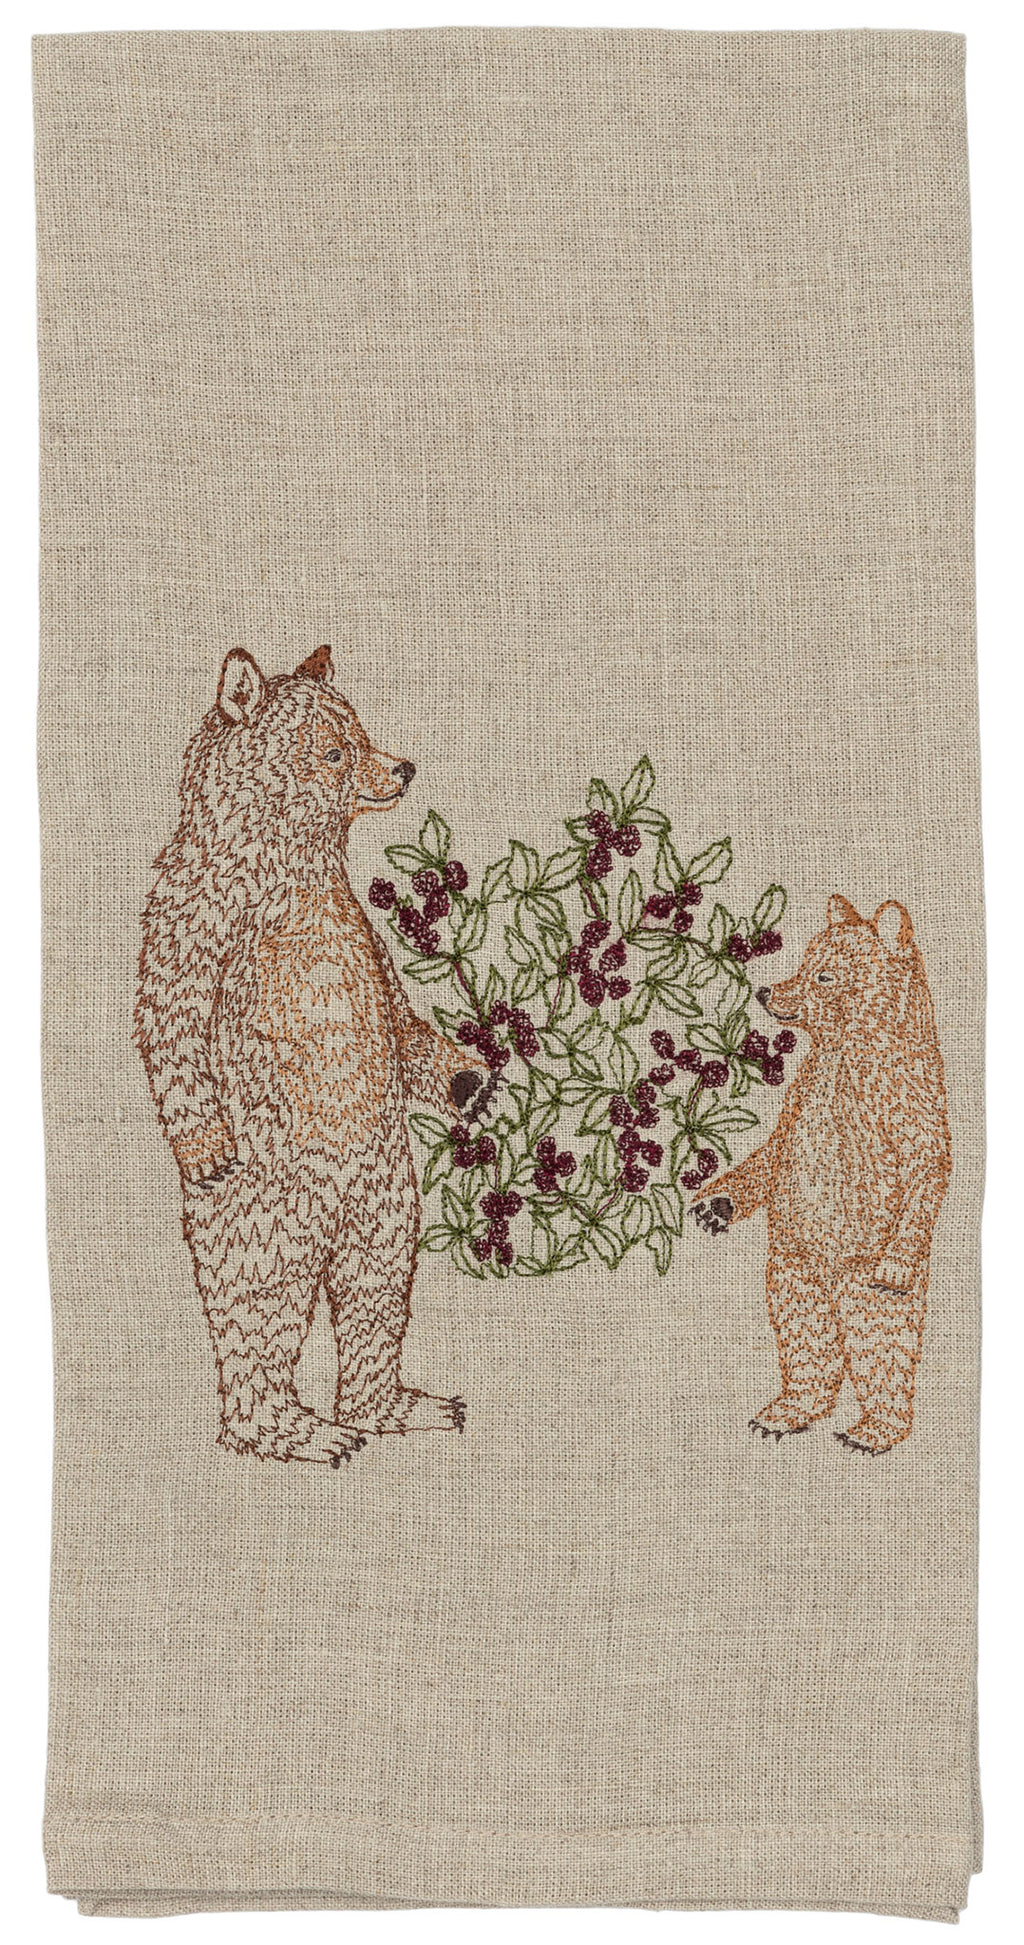 Briar Bears Tea Towel